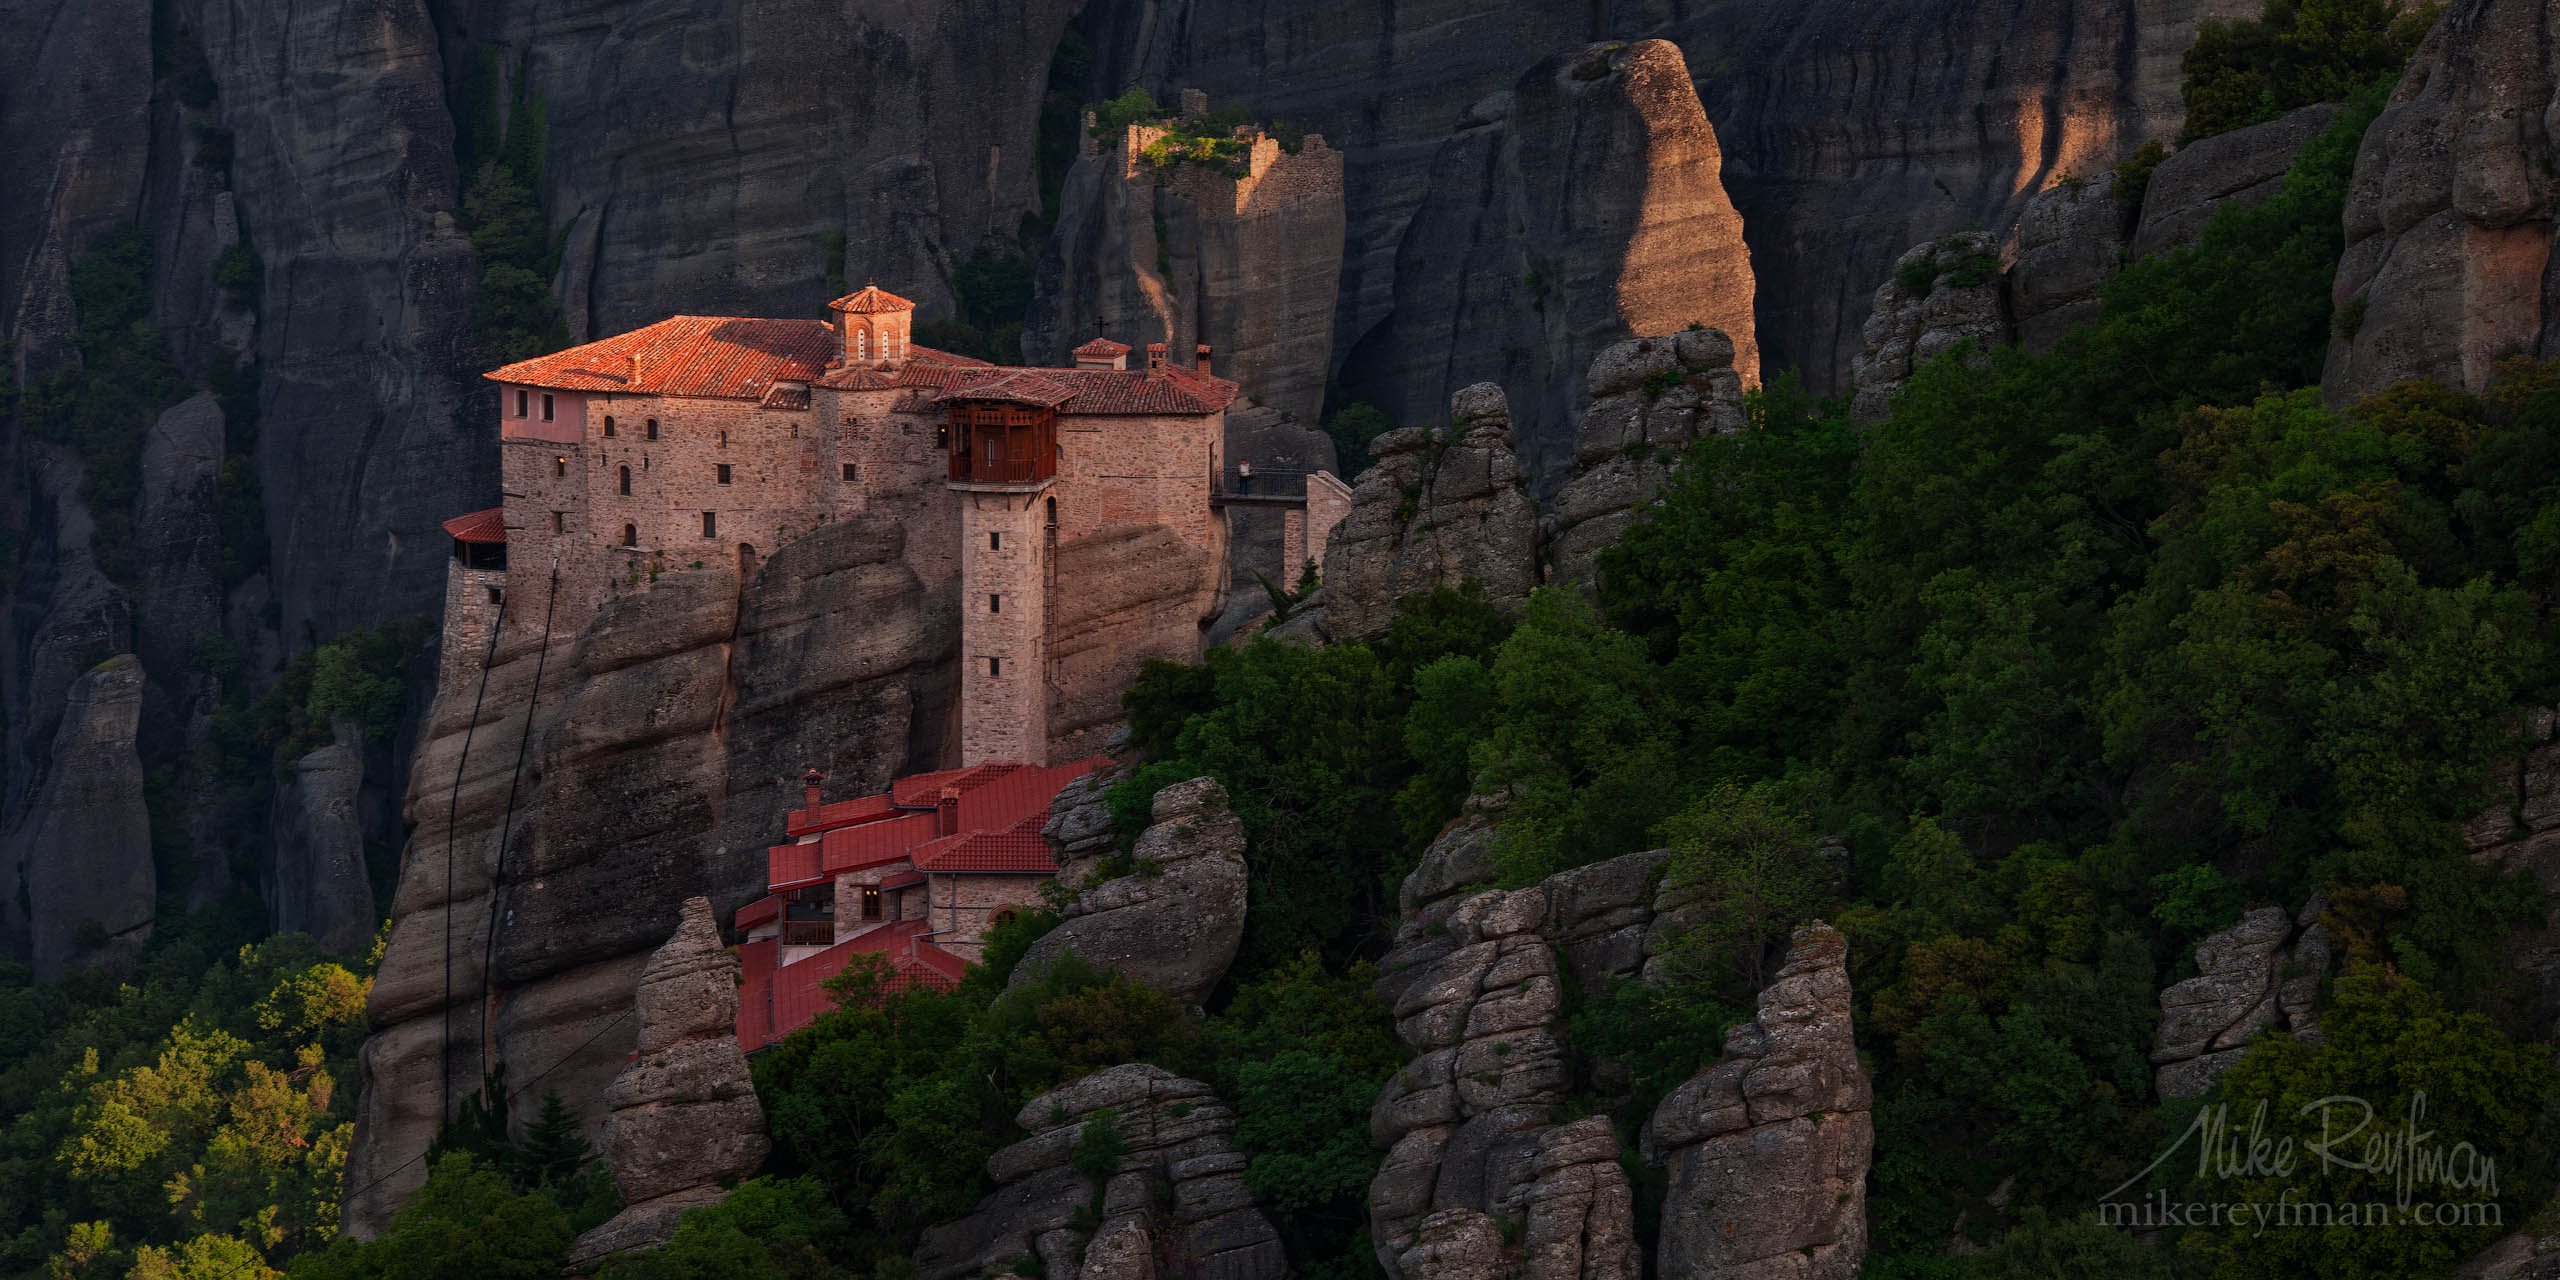 Roussanou Nunnery at sunrise. Meteora, Thessaly, Greece P12-MRAIR5188 - Selected panoramic images with 2:1 aspect ratio - Mike Reyfman Photography